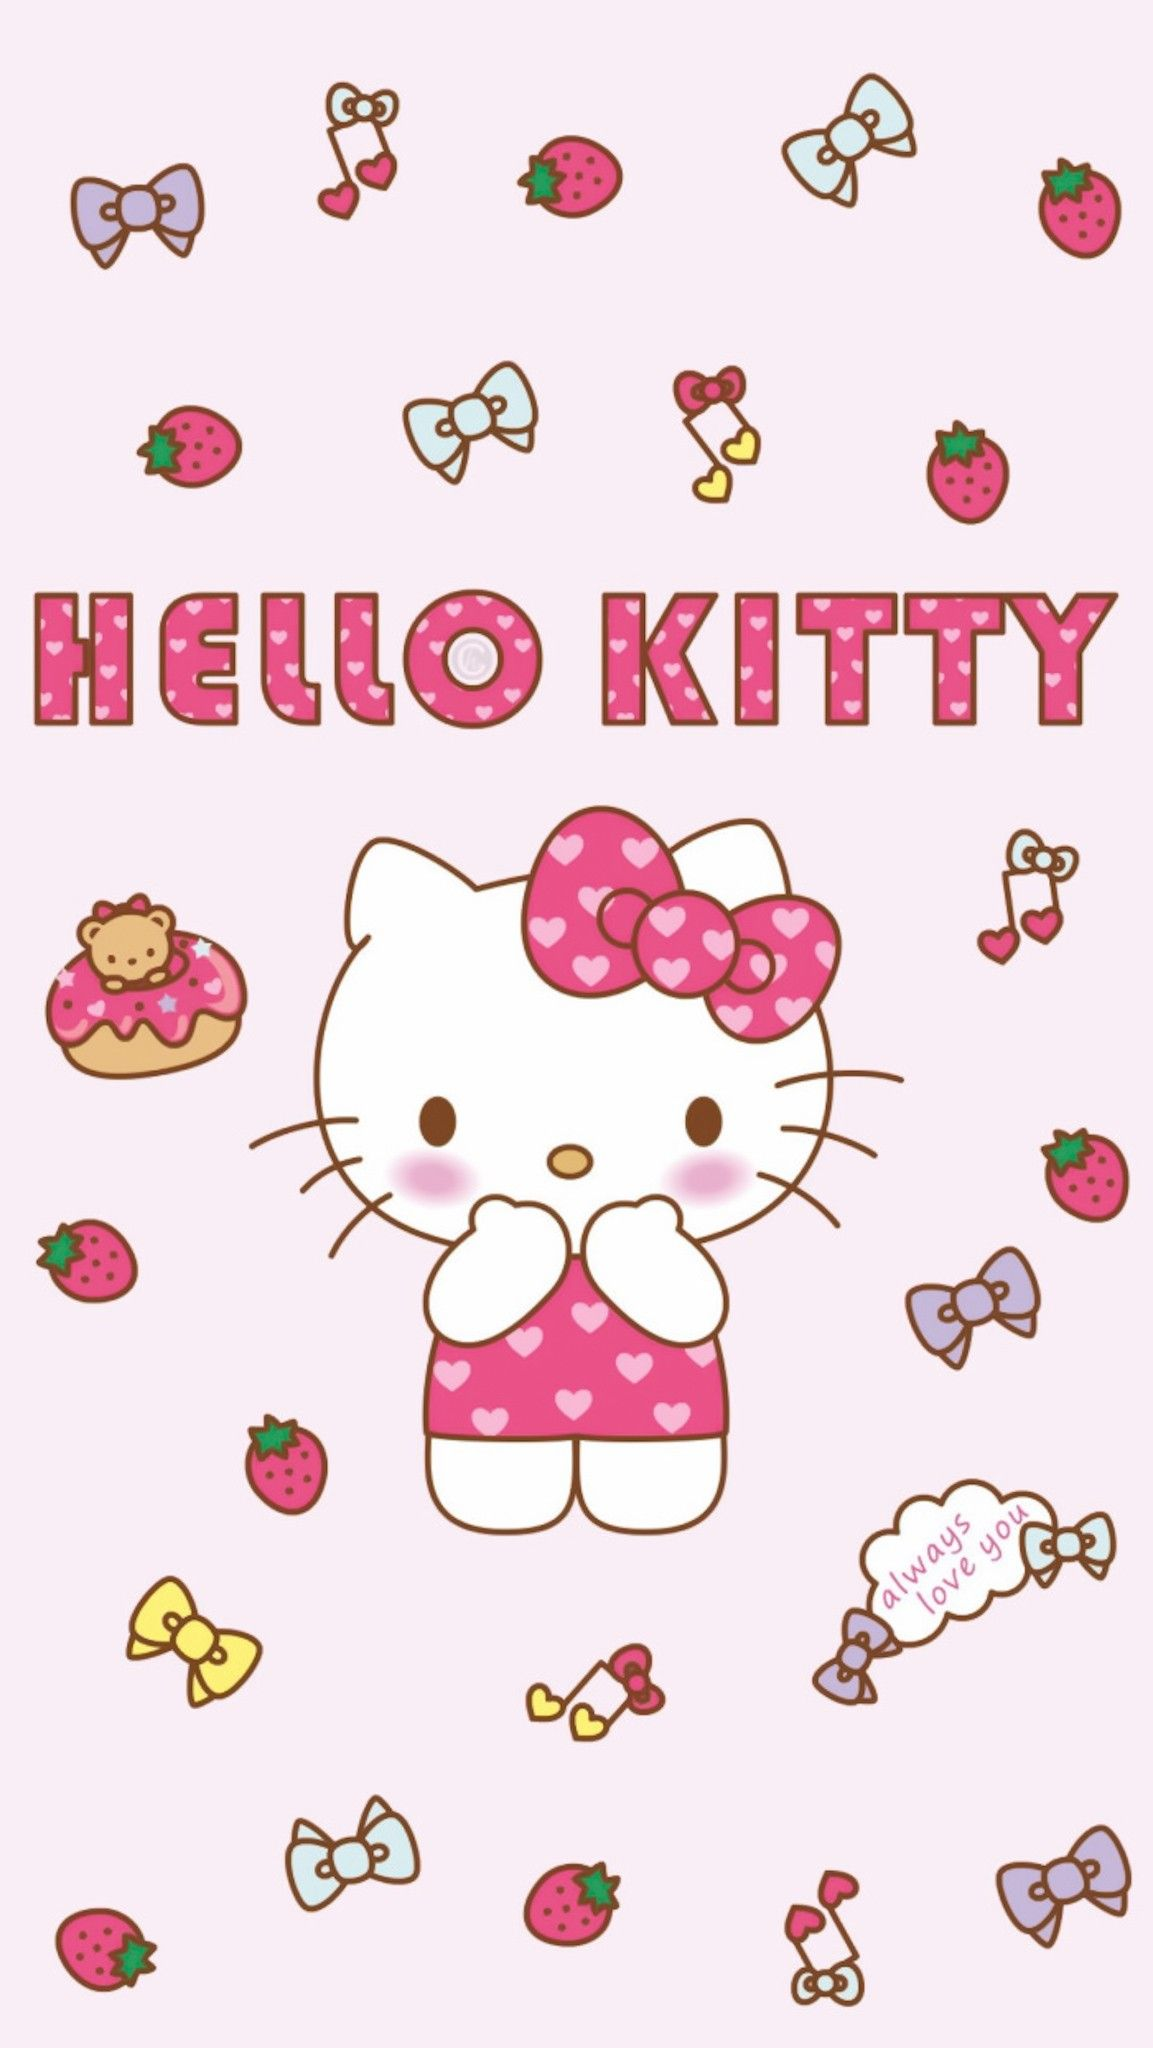 Pin by Blippo Kawaii Shop on Hello Kitty & Friends in 2020